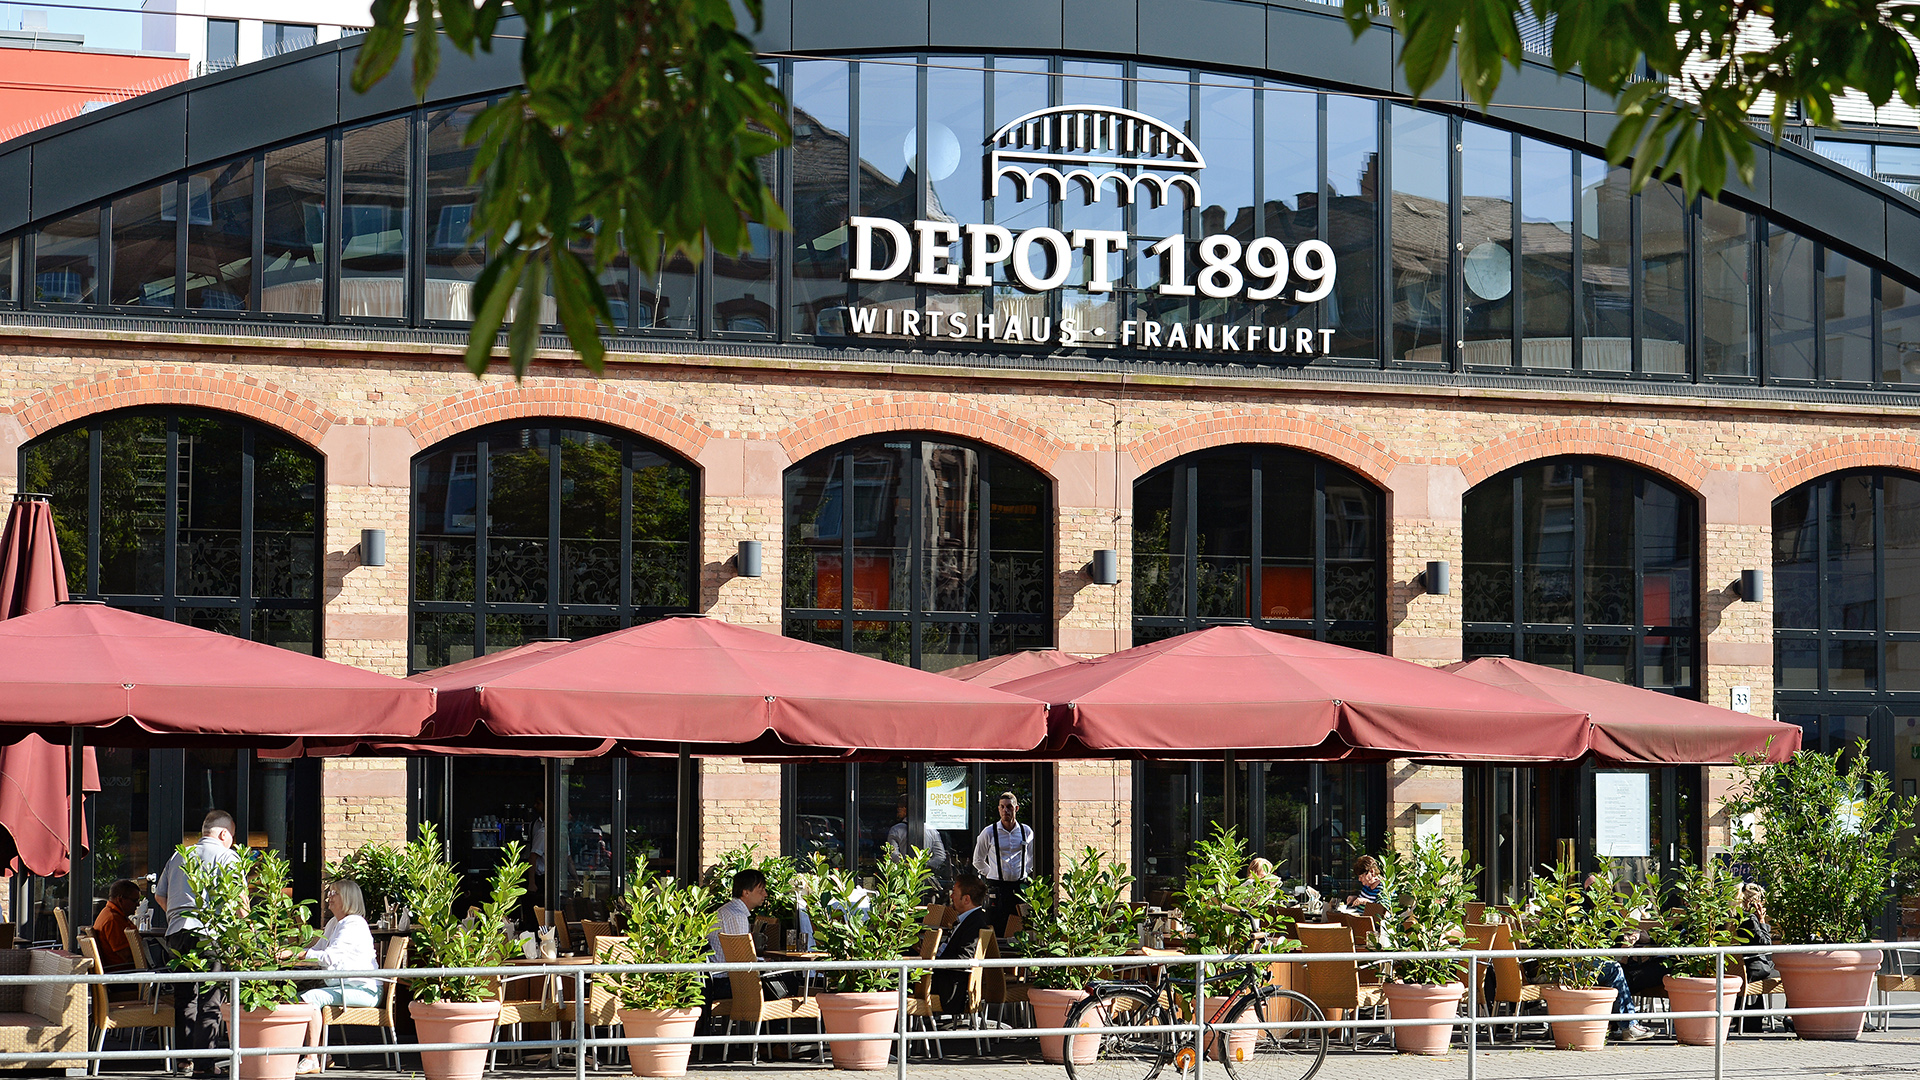 Depot 1899 wedding locations fiylo for Depot offenbach